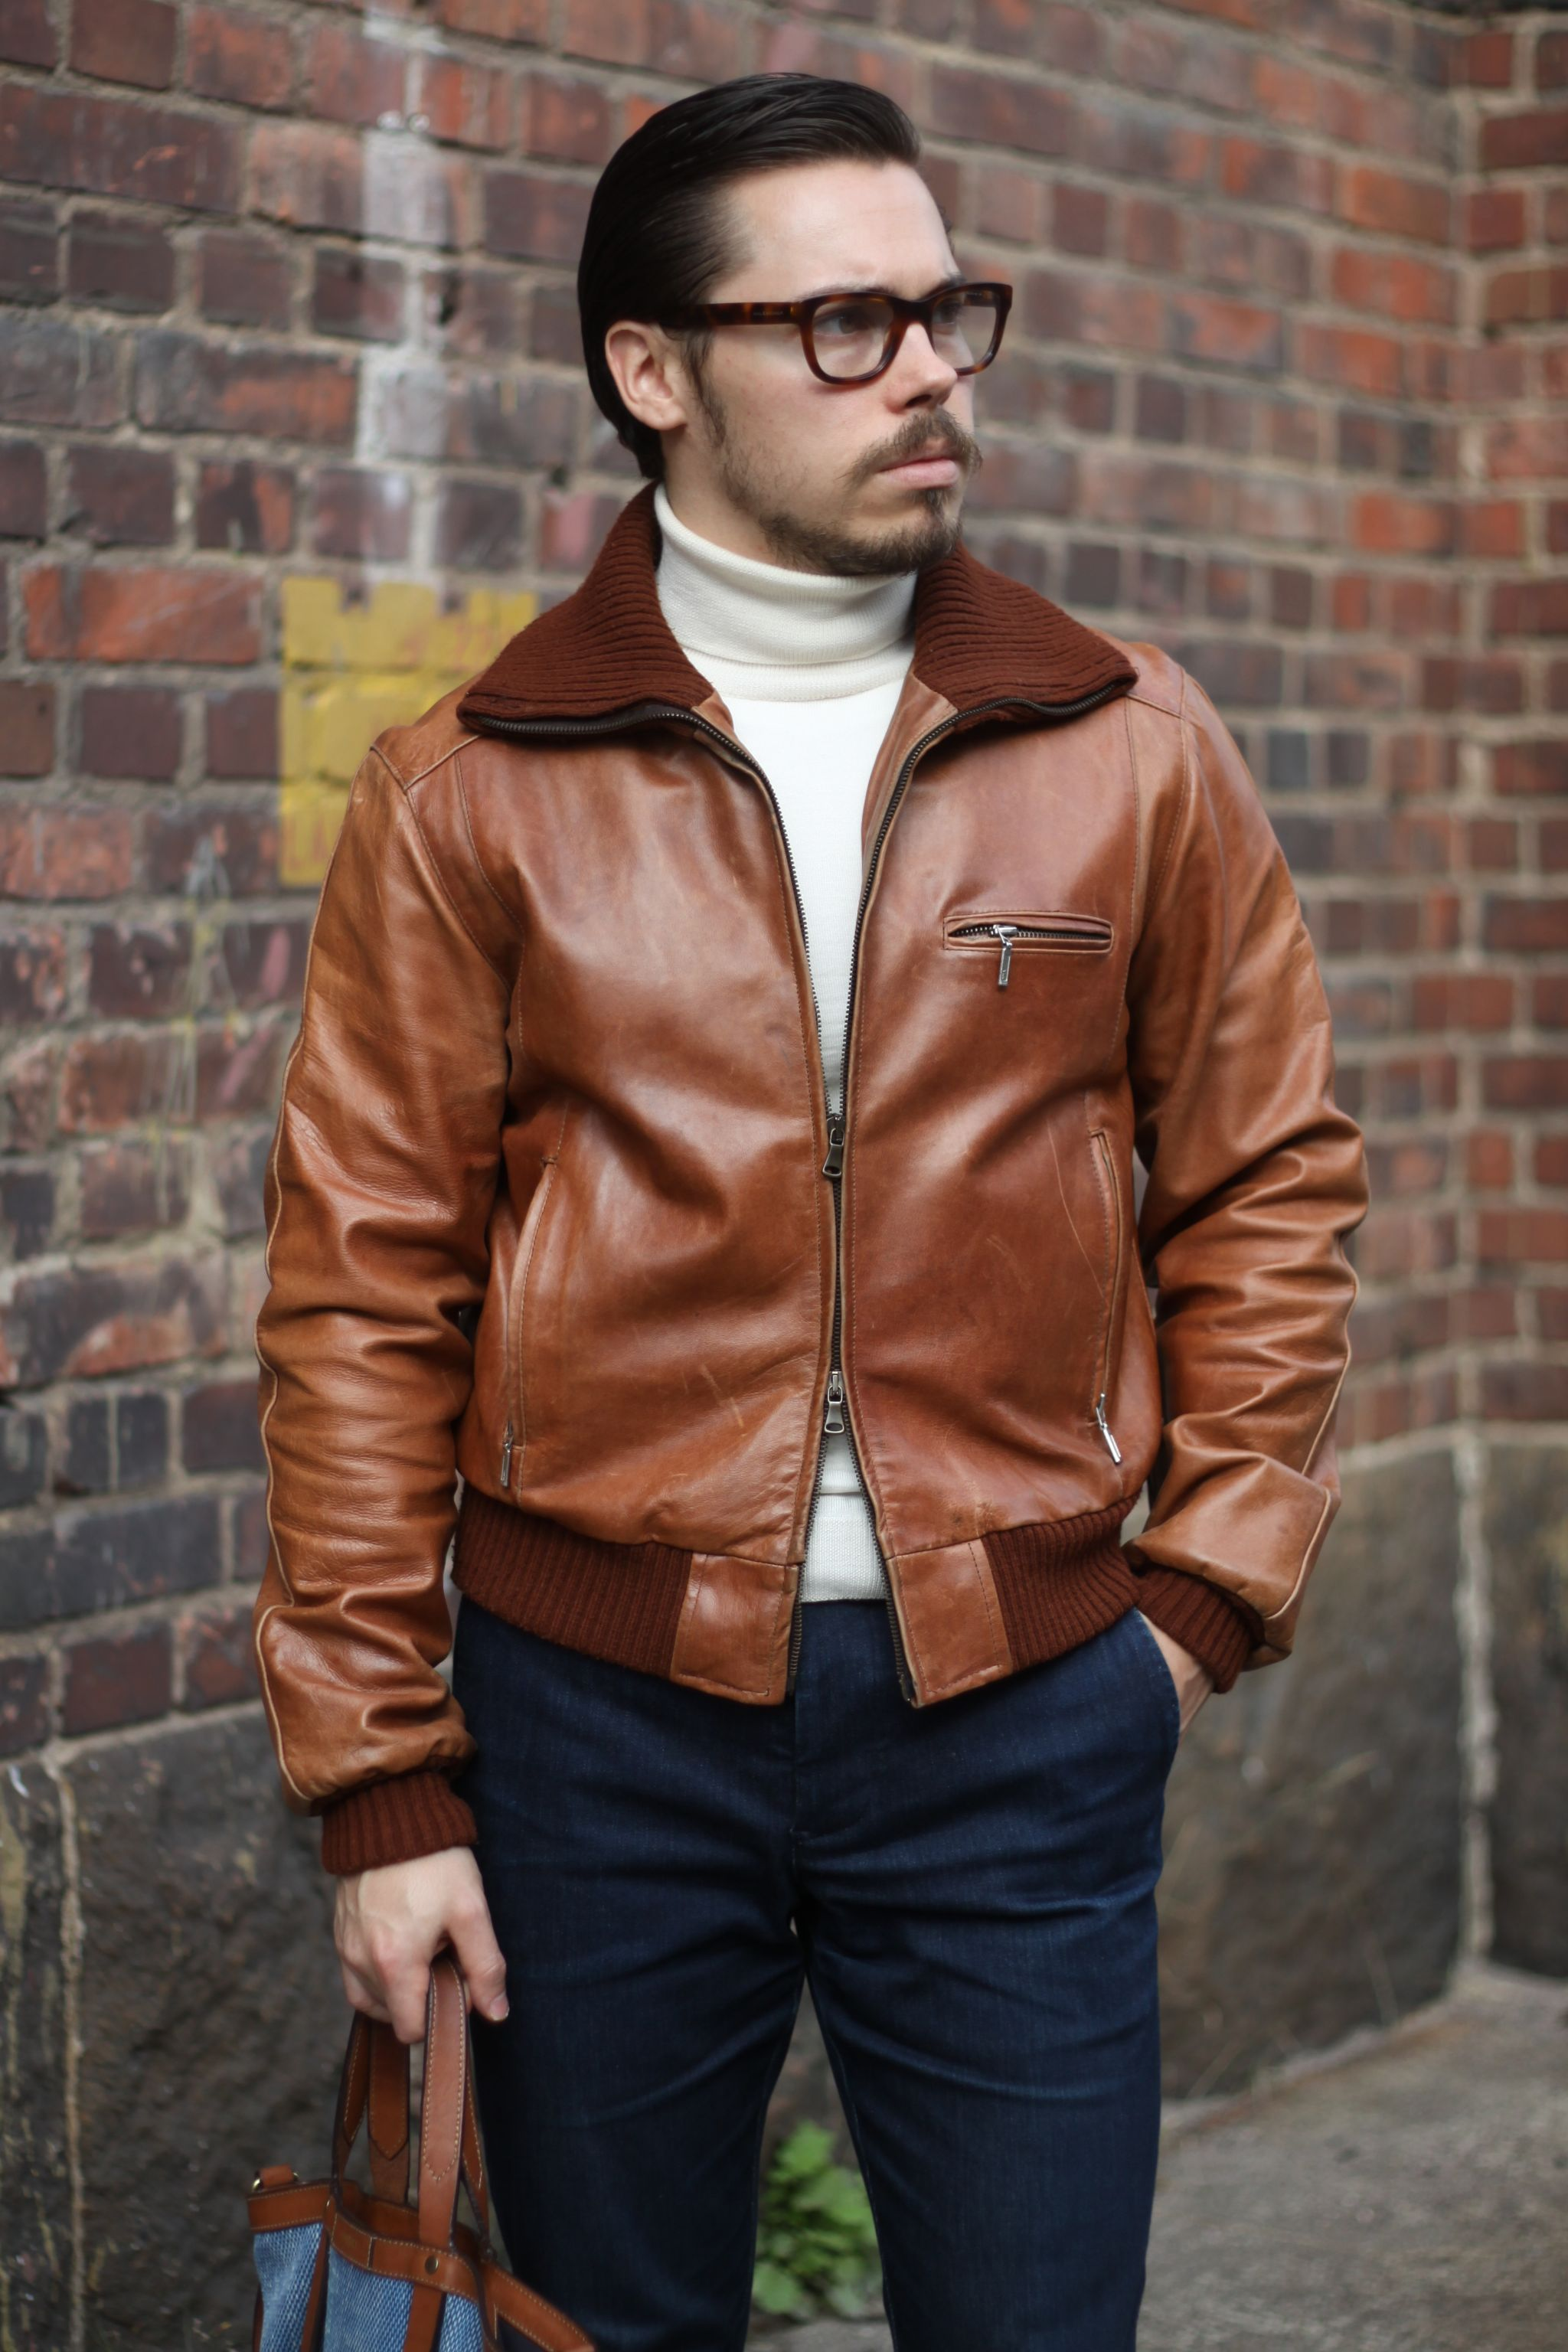 Well-fitted and sharp A-1 leather jacket can be a functional piece when going for a dressed-up casual ensemble.